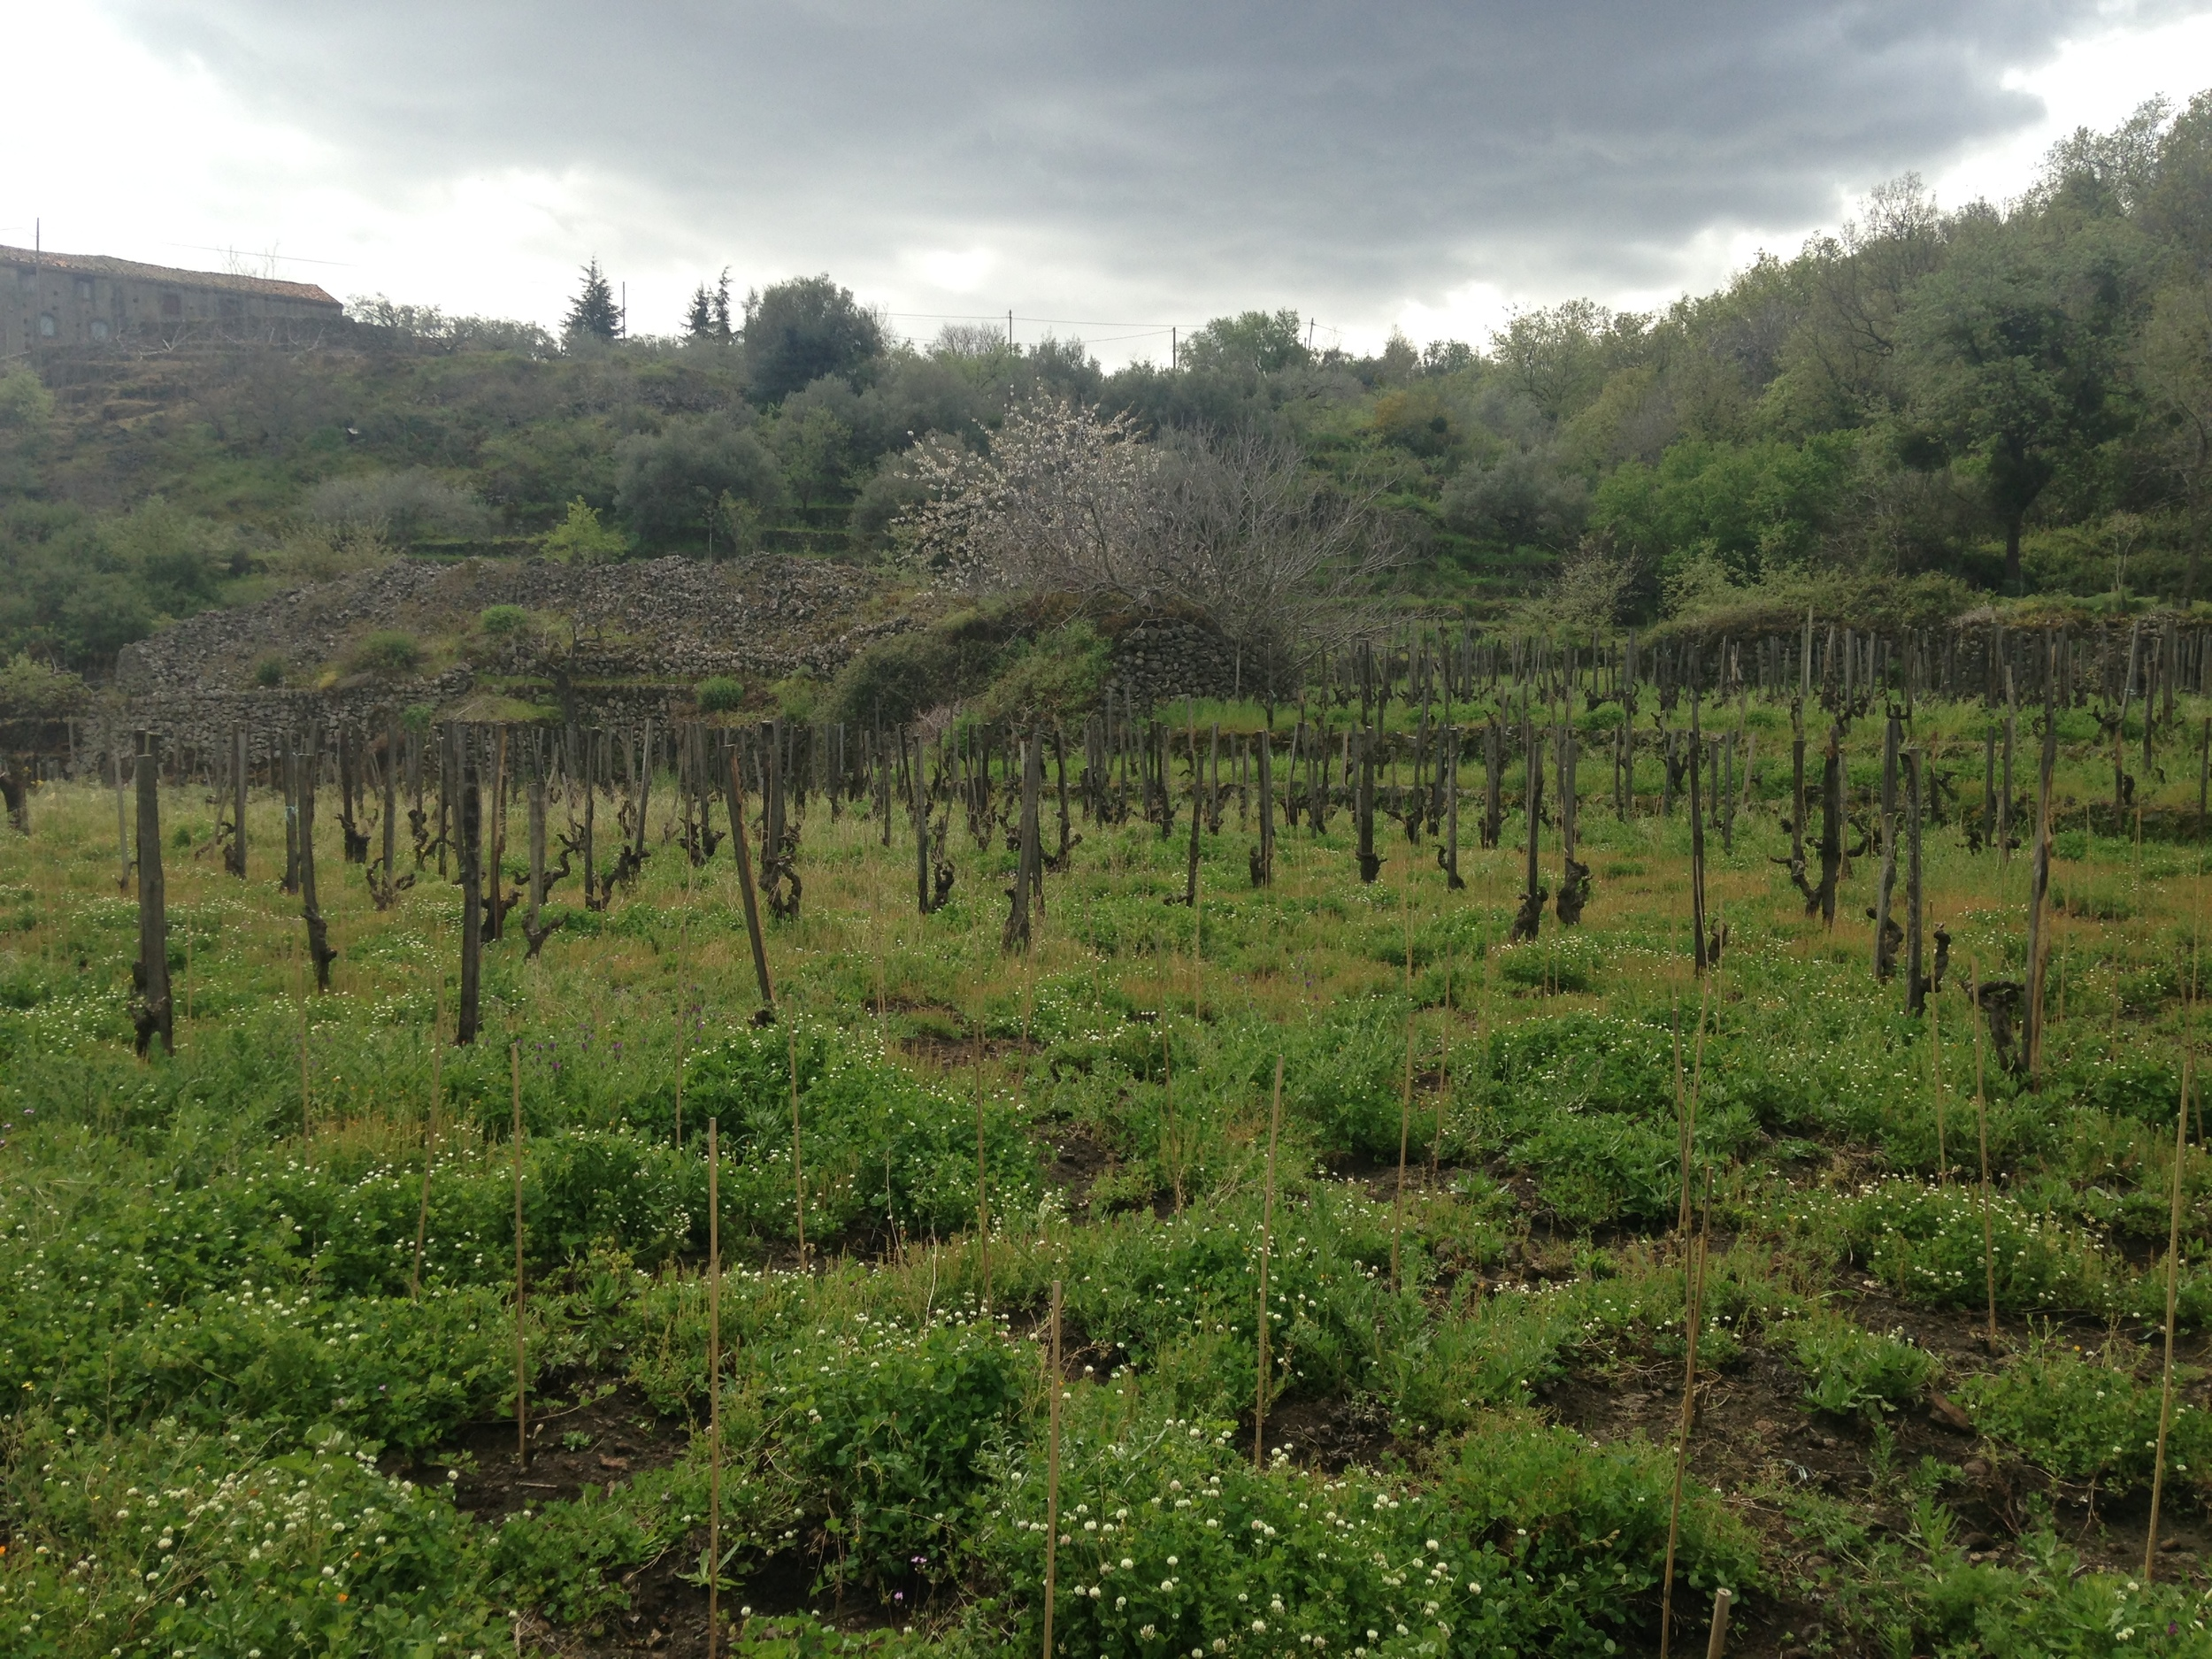 Pre-phylloxera Nerello Mascalese vines at Firriato.